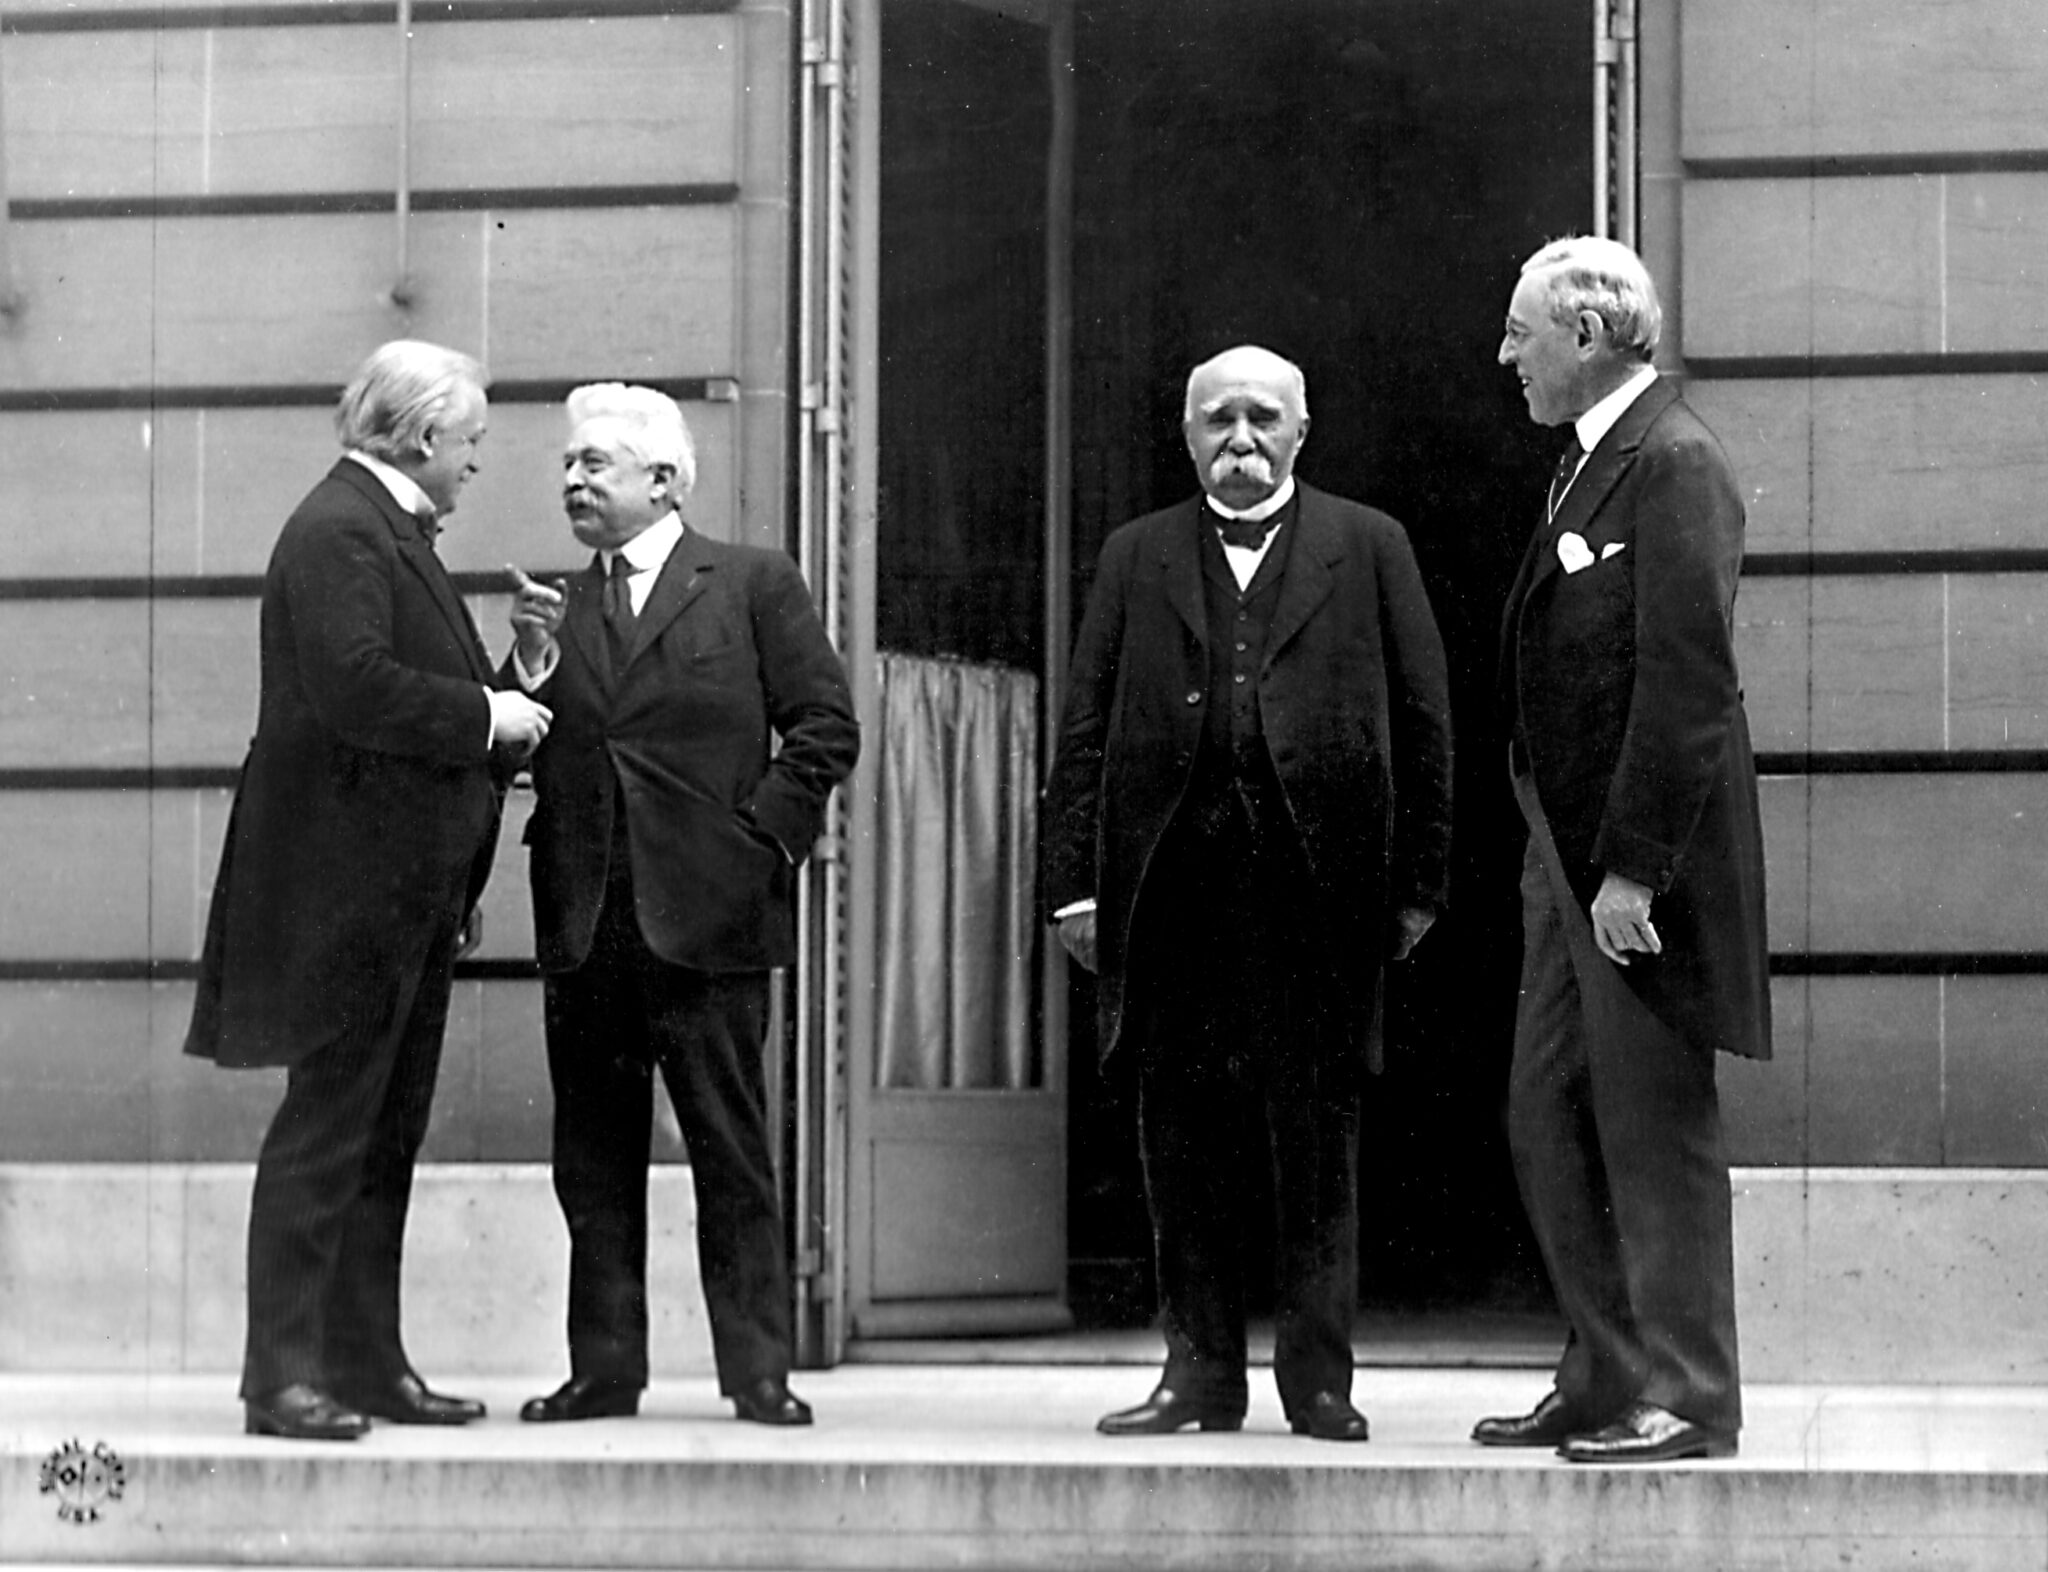 Council of Four at the WWI Paris peace conference, May 27, 1919: left to right, British Prime Minister David Lloyd George, Italian Premier Vittorio Orlando; French Premier Georges Clemenceau, U.S. President Woodrow Wilson. (Edward N. Jackson, U.S. Signal Corps, Wikimedia Commons)